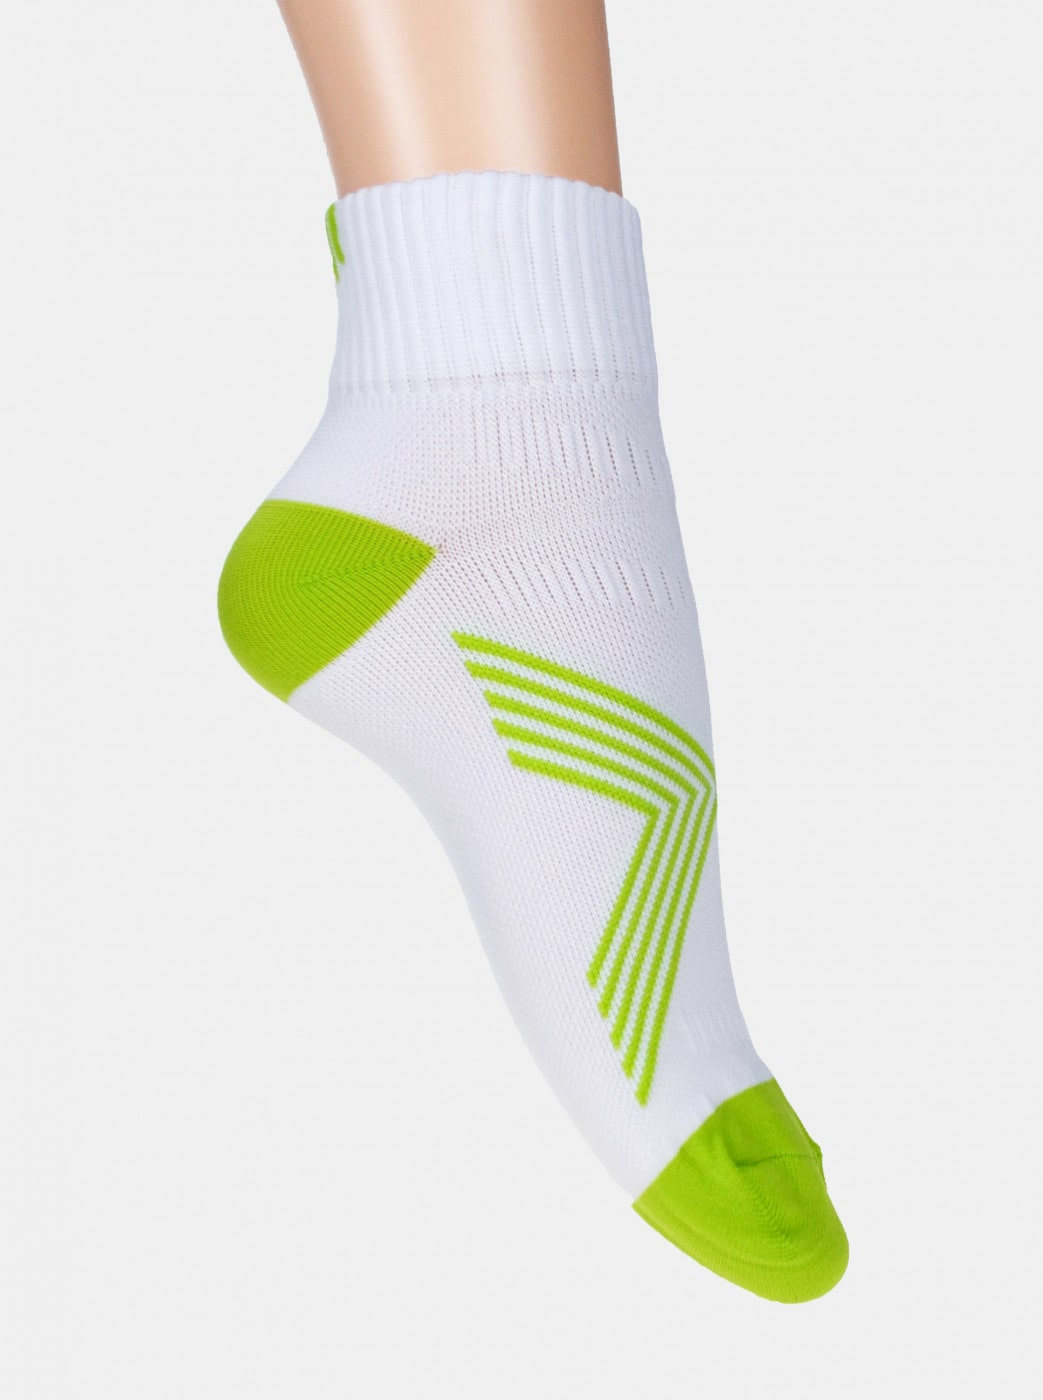 Marie Claire White Ankle Socks